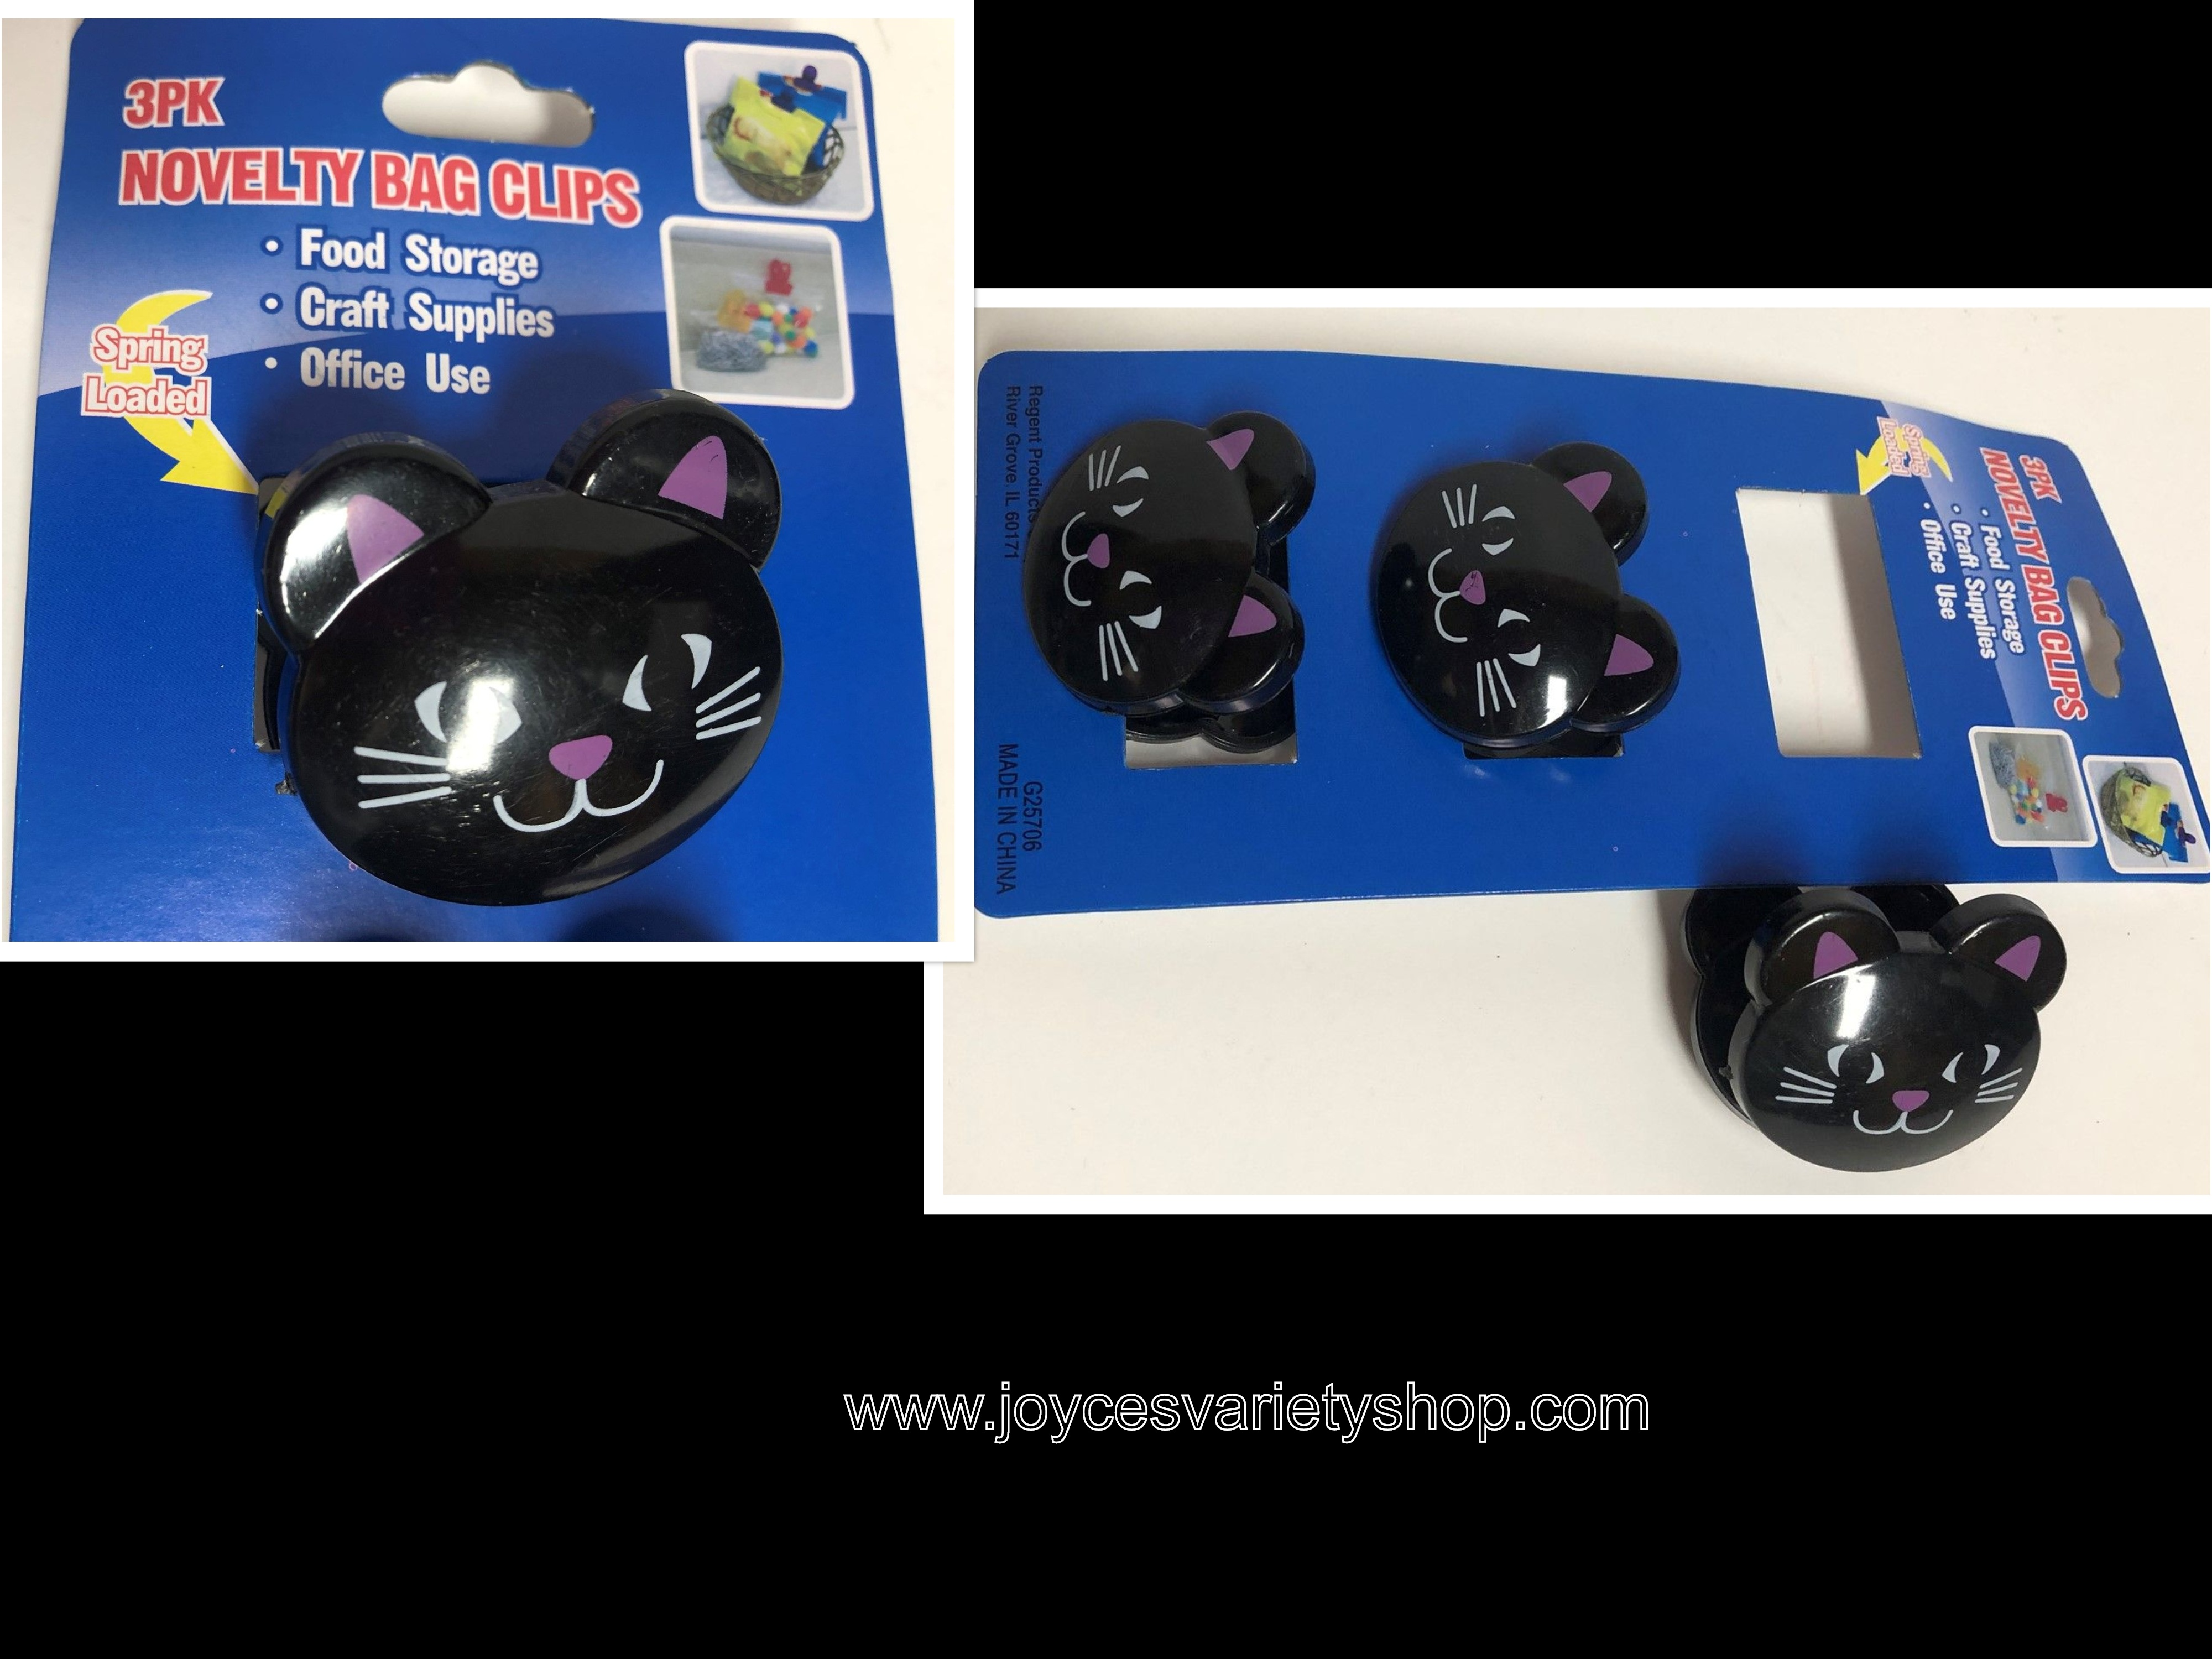 Black Cat Kitty Clips Bag Clips Food Storage Crafts Office Set of 3 Novelty